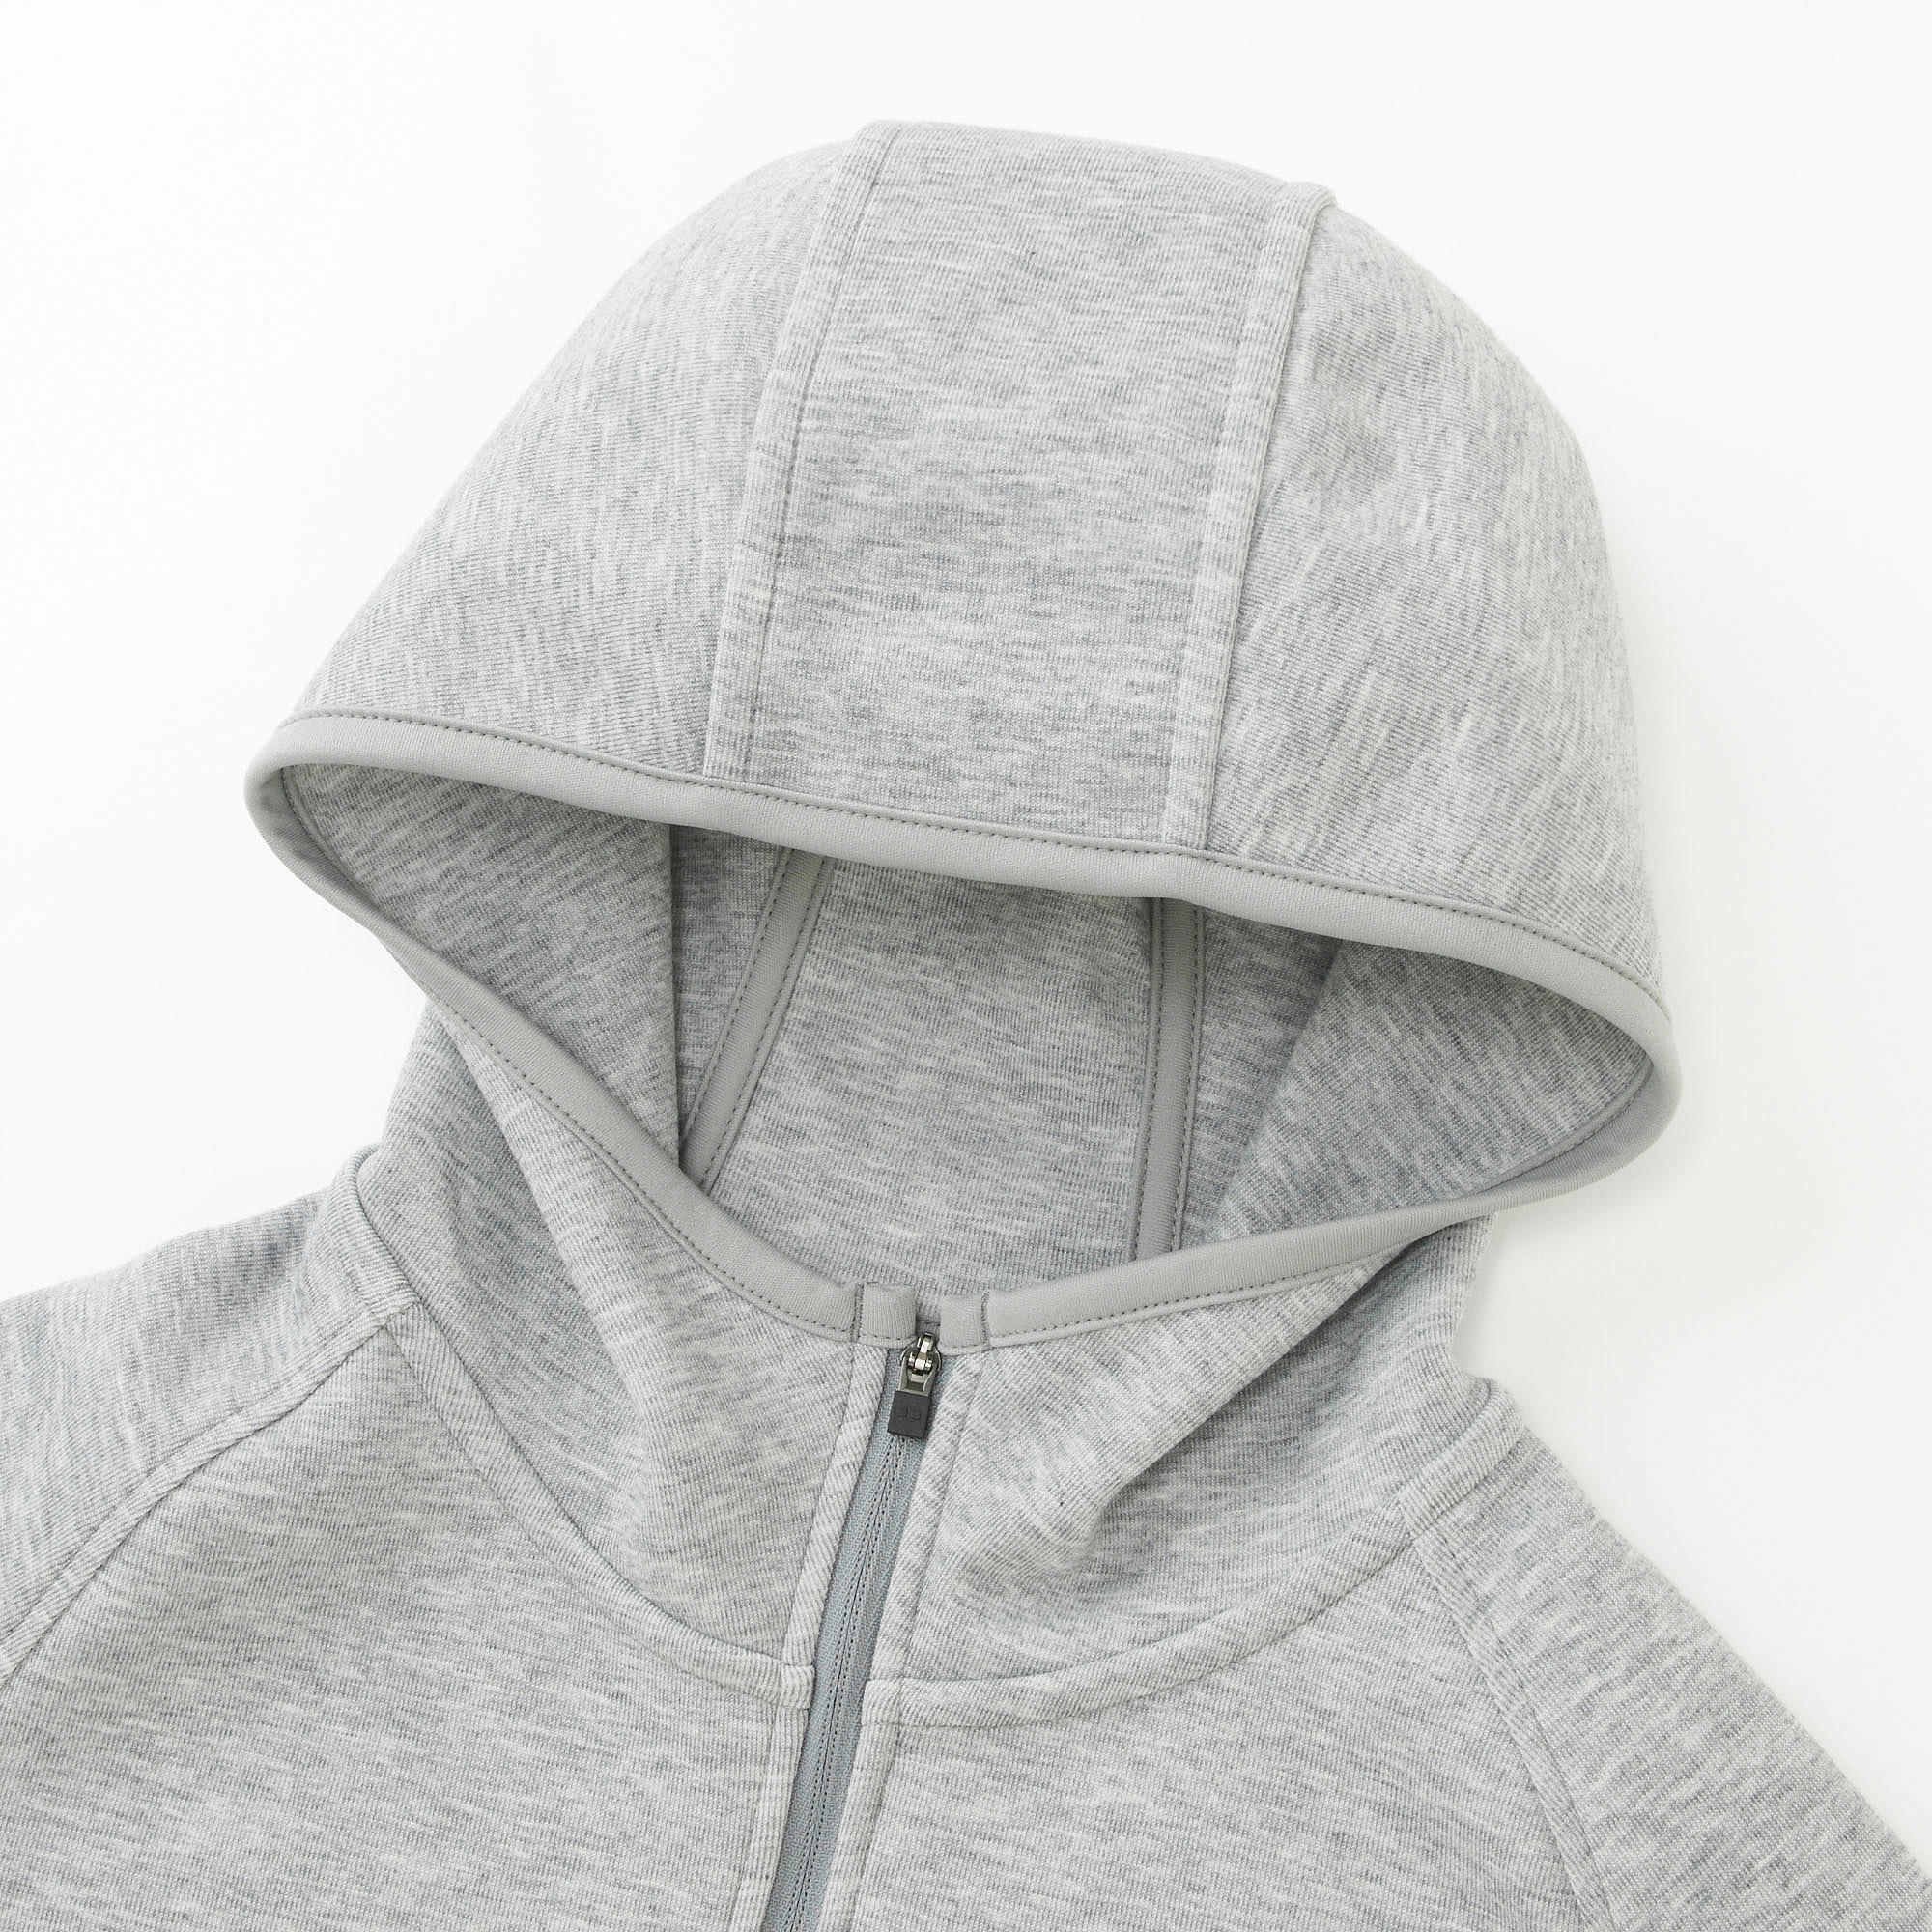 Contoured hood frames the face. Great for sports or casual wear.